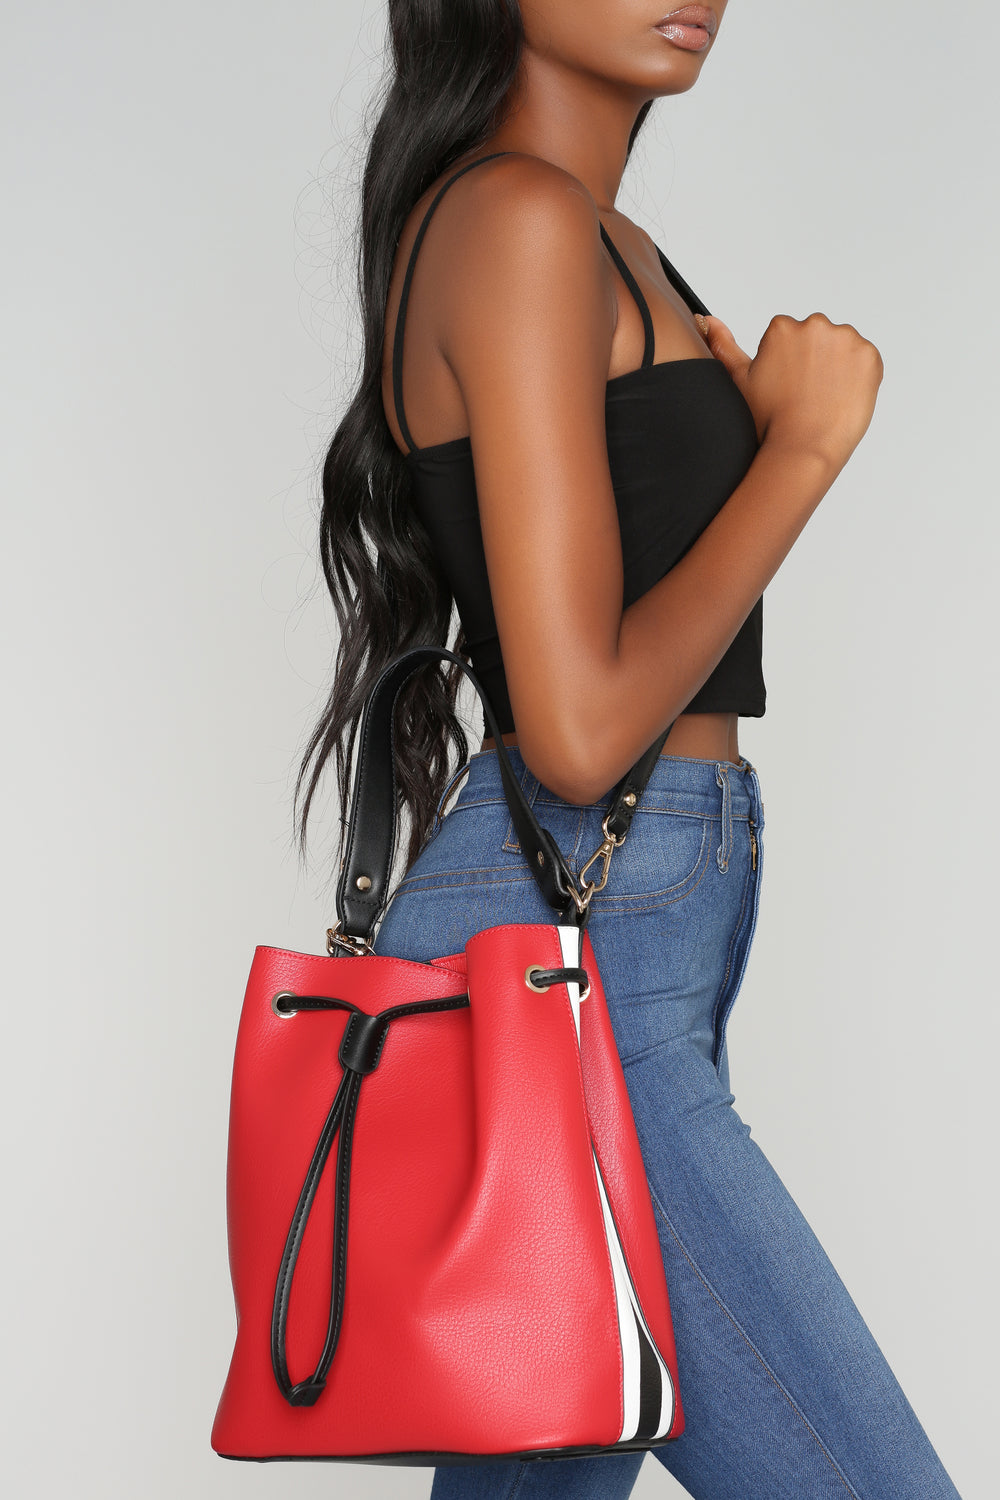 Speedy Racer Bucket Bag - Red